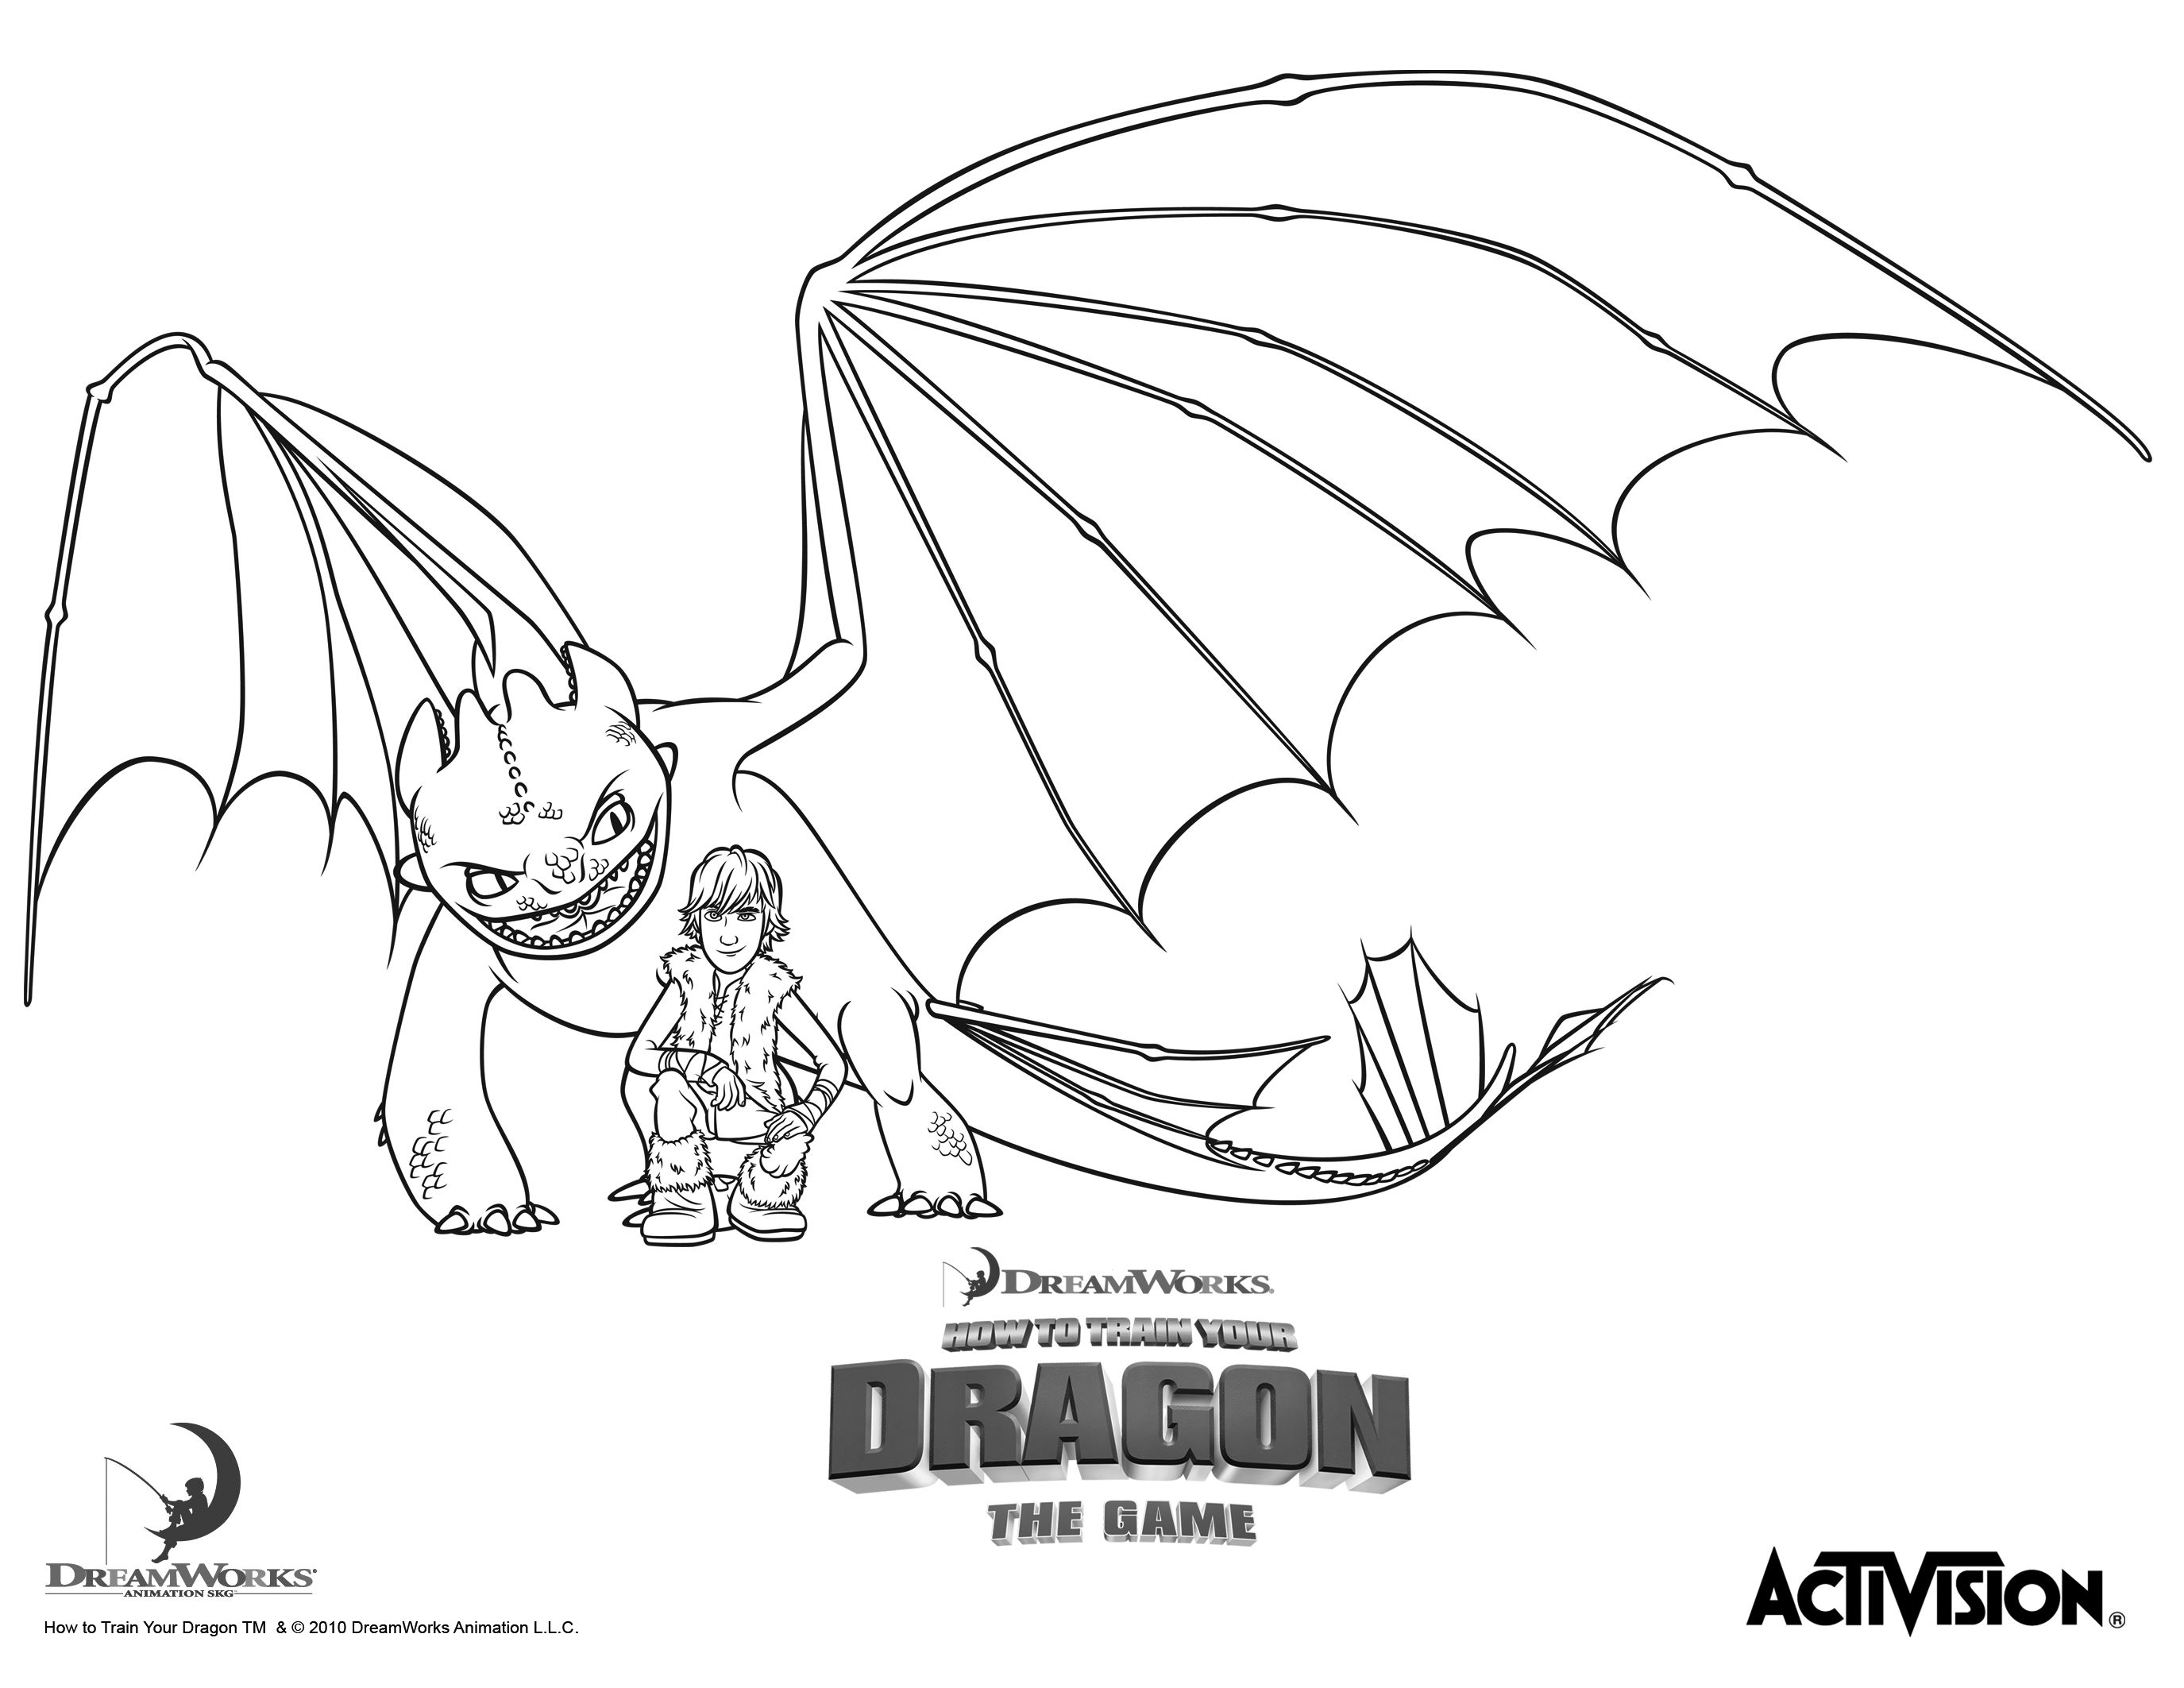 Coloring pages trains for kids - Hiccup And Night Fury How To Train Your Dragon Coloring Pages For Kids